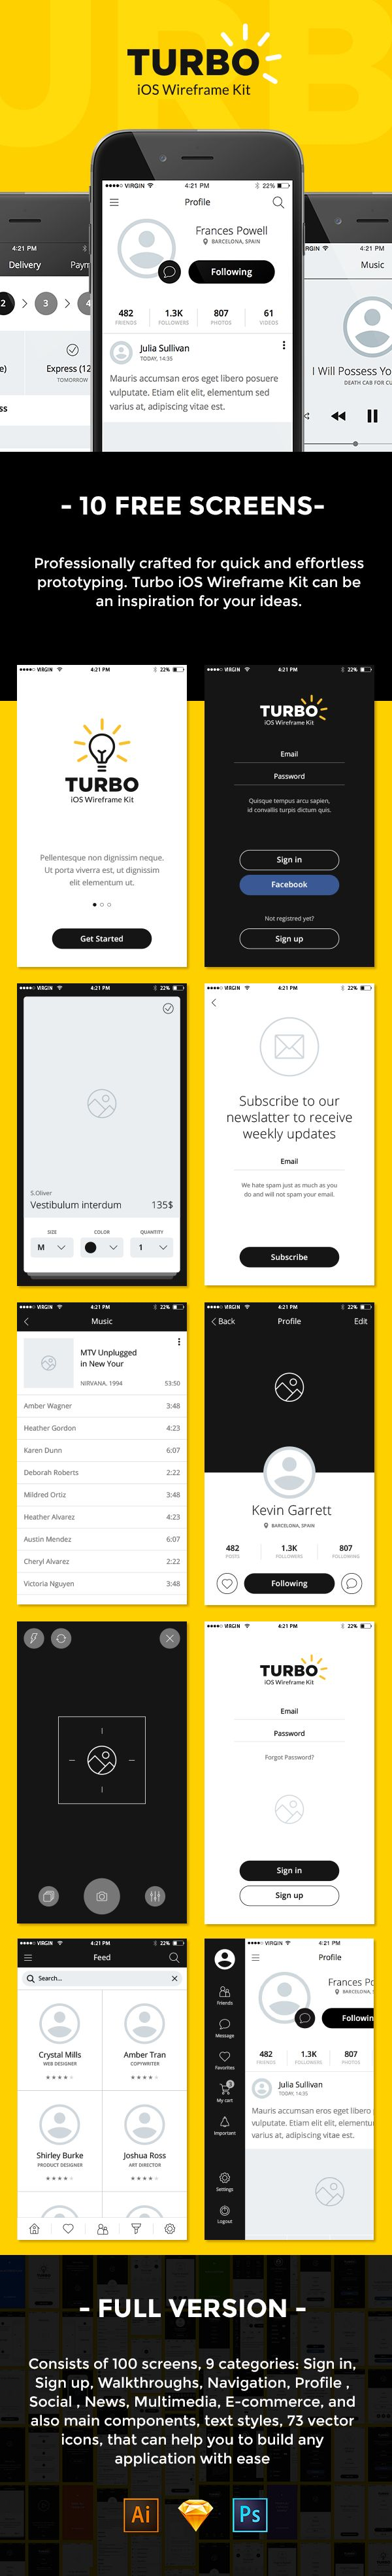 I'm glad to introduce to you today this professionally crafted wireframe UI kit that will help you build your next iOS app...